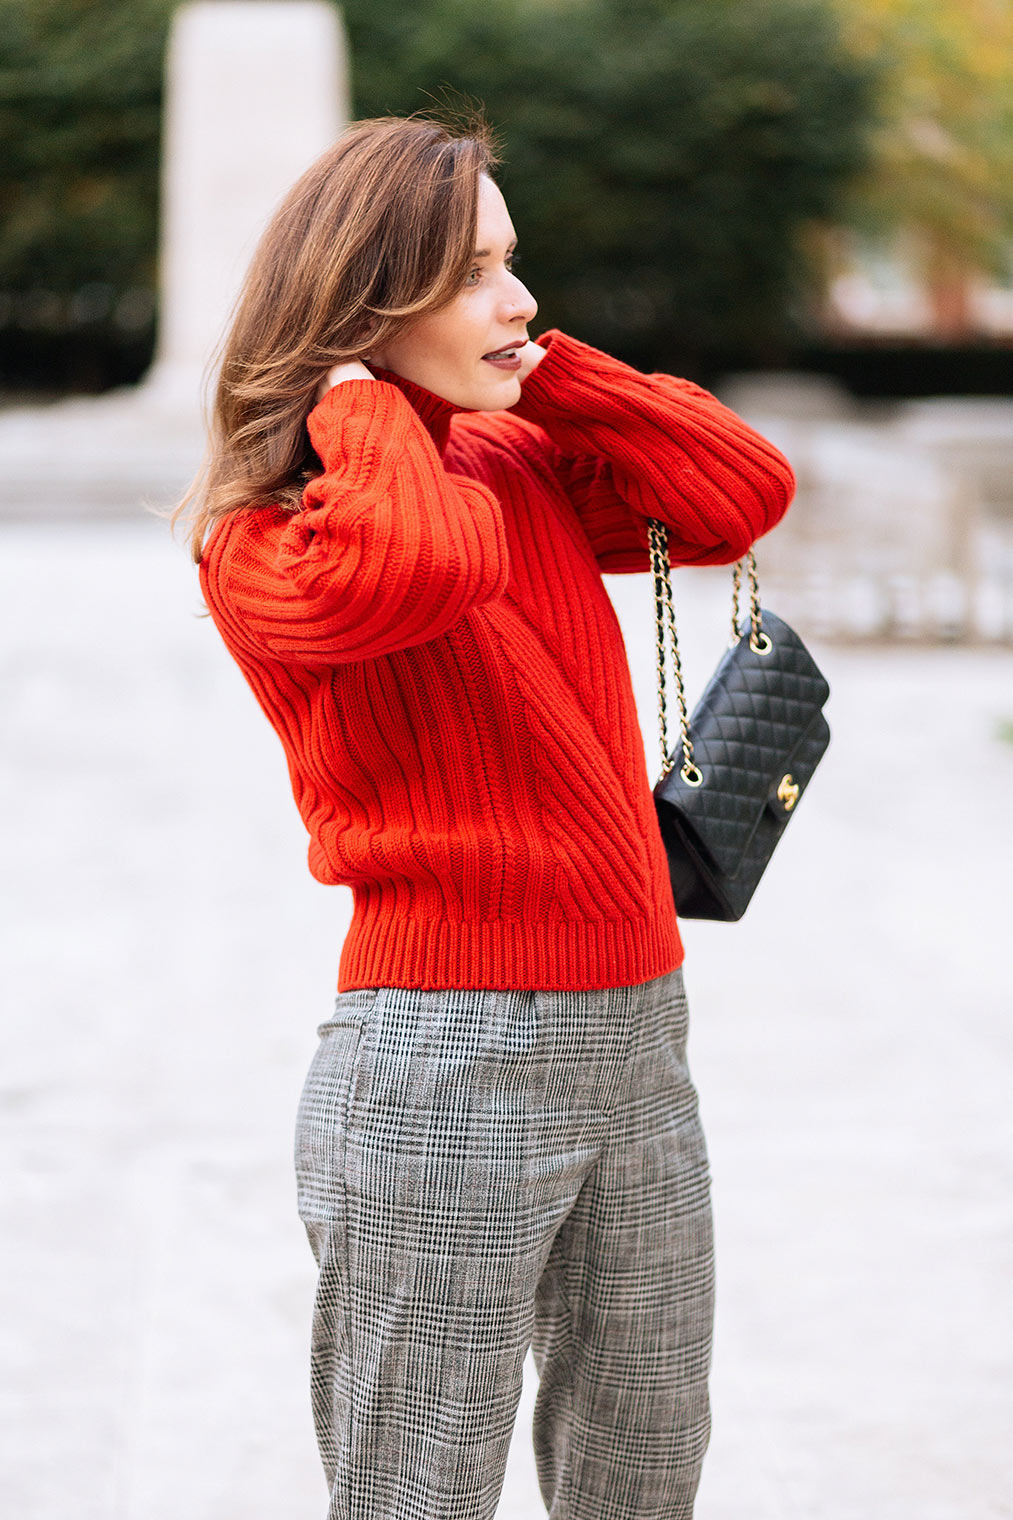 Thick red sweater ideal for winter